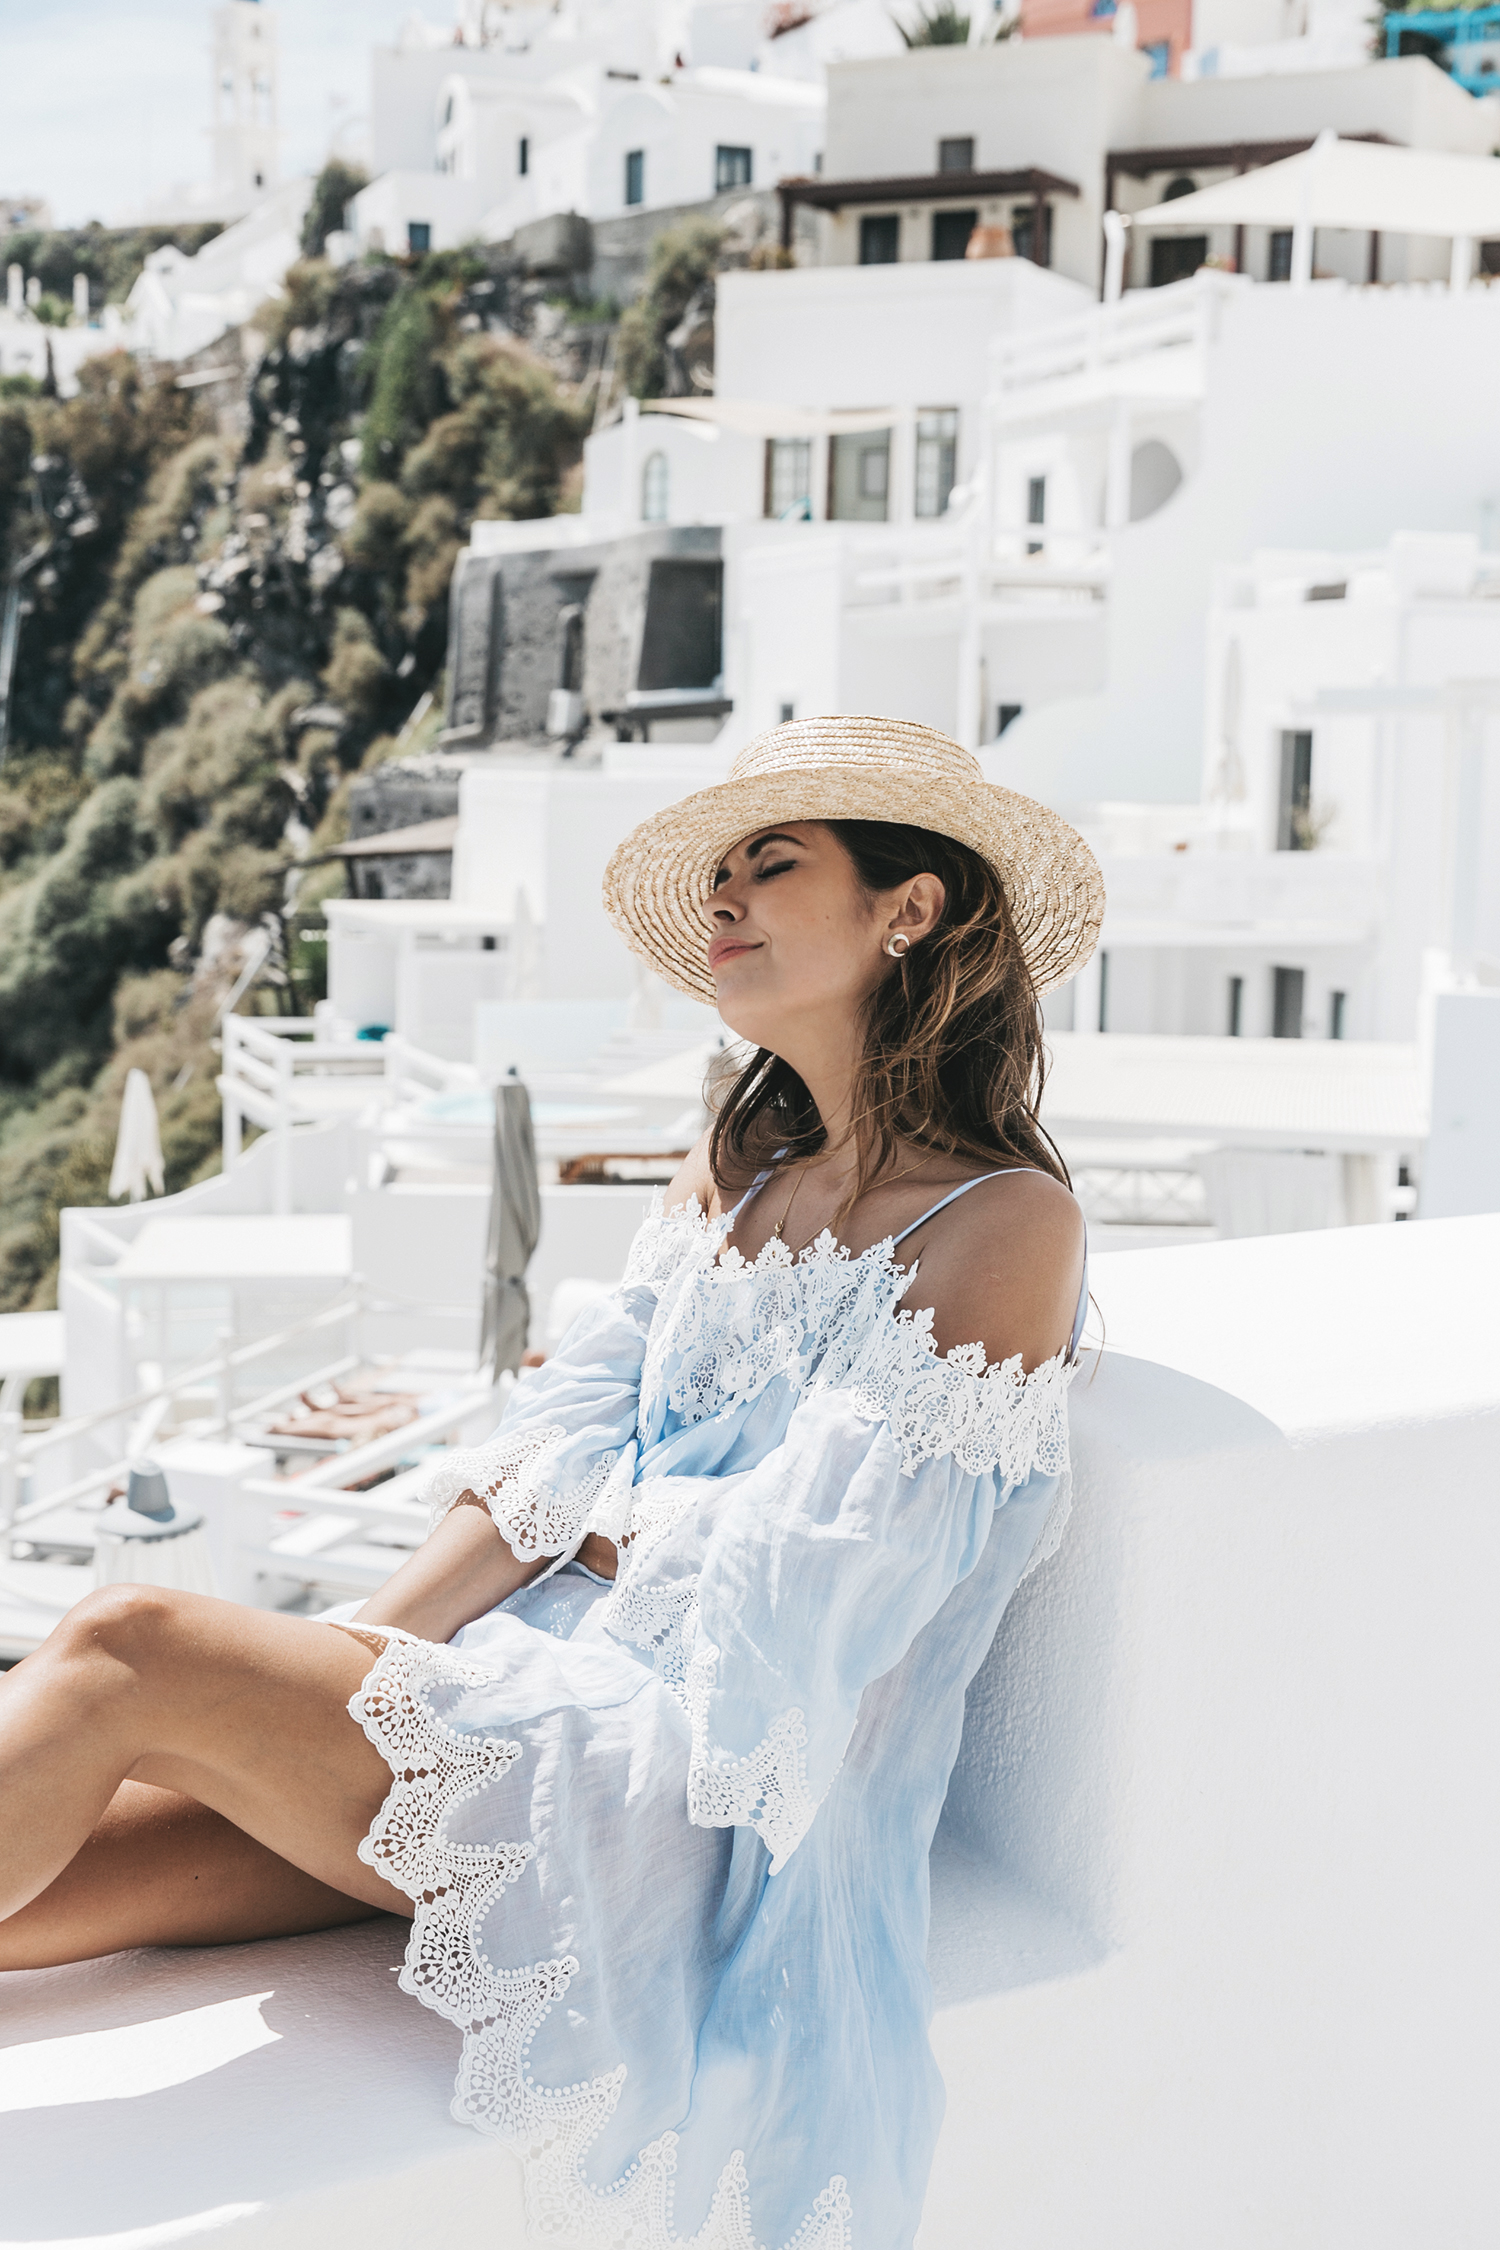 Blue_Dress-Soludos_Escapes-Soludos_Espadrilles-Canotier-Hat-Lack_Of_Color-Summer-Santorini-Collage_Vintage-48